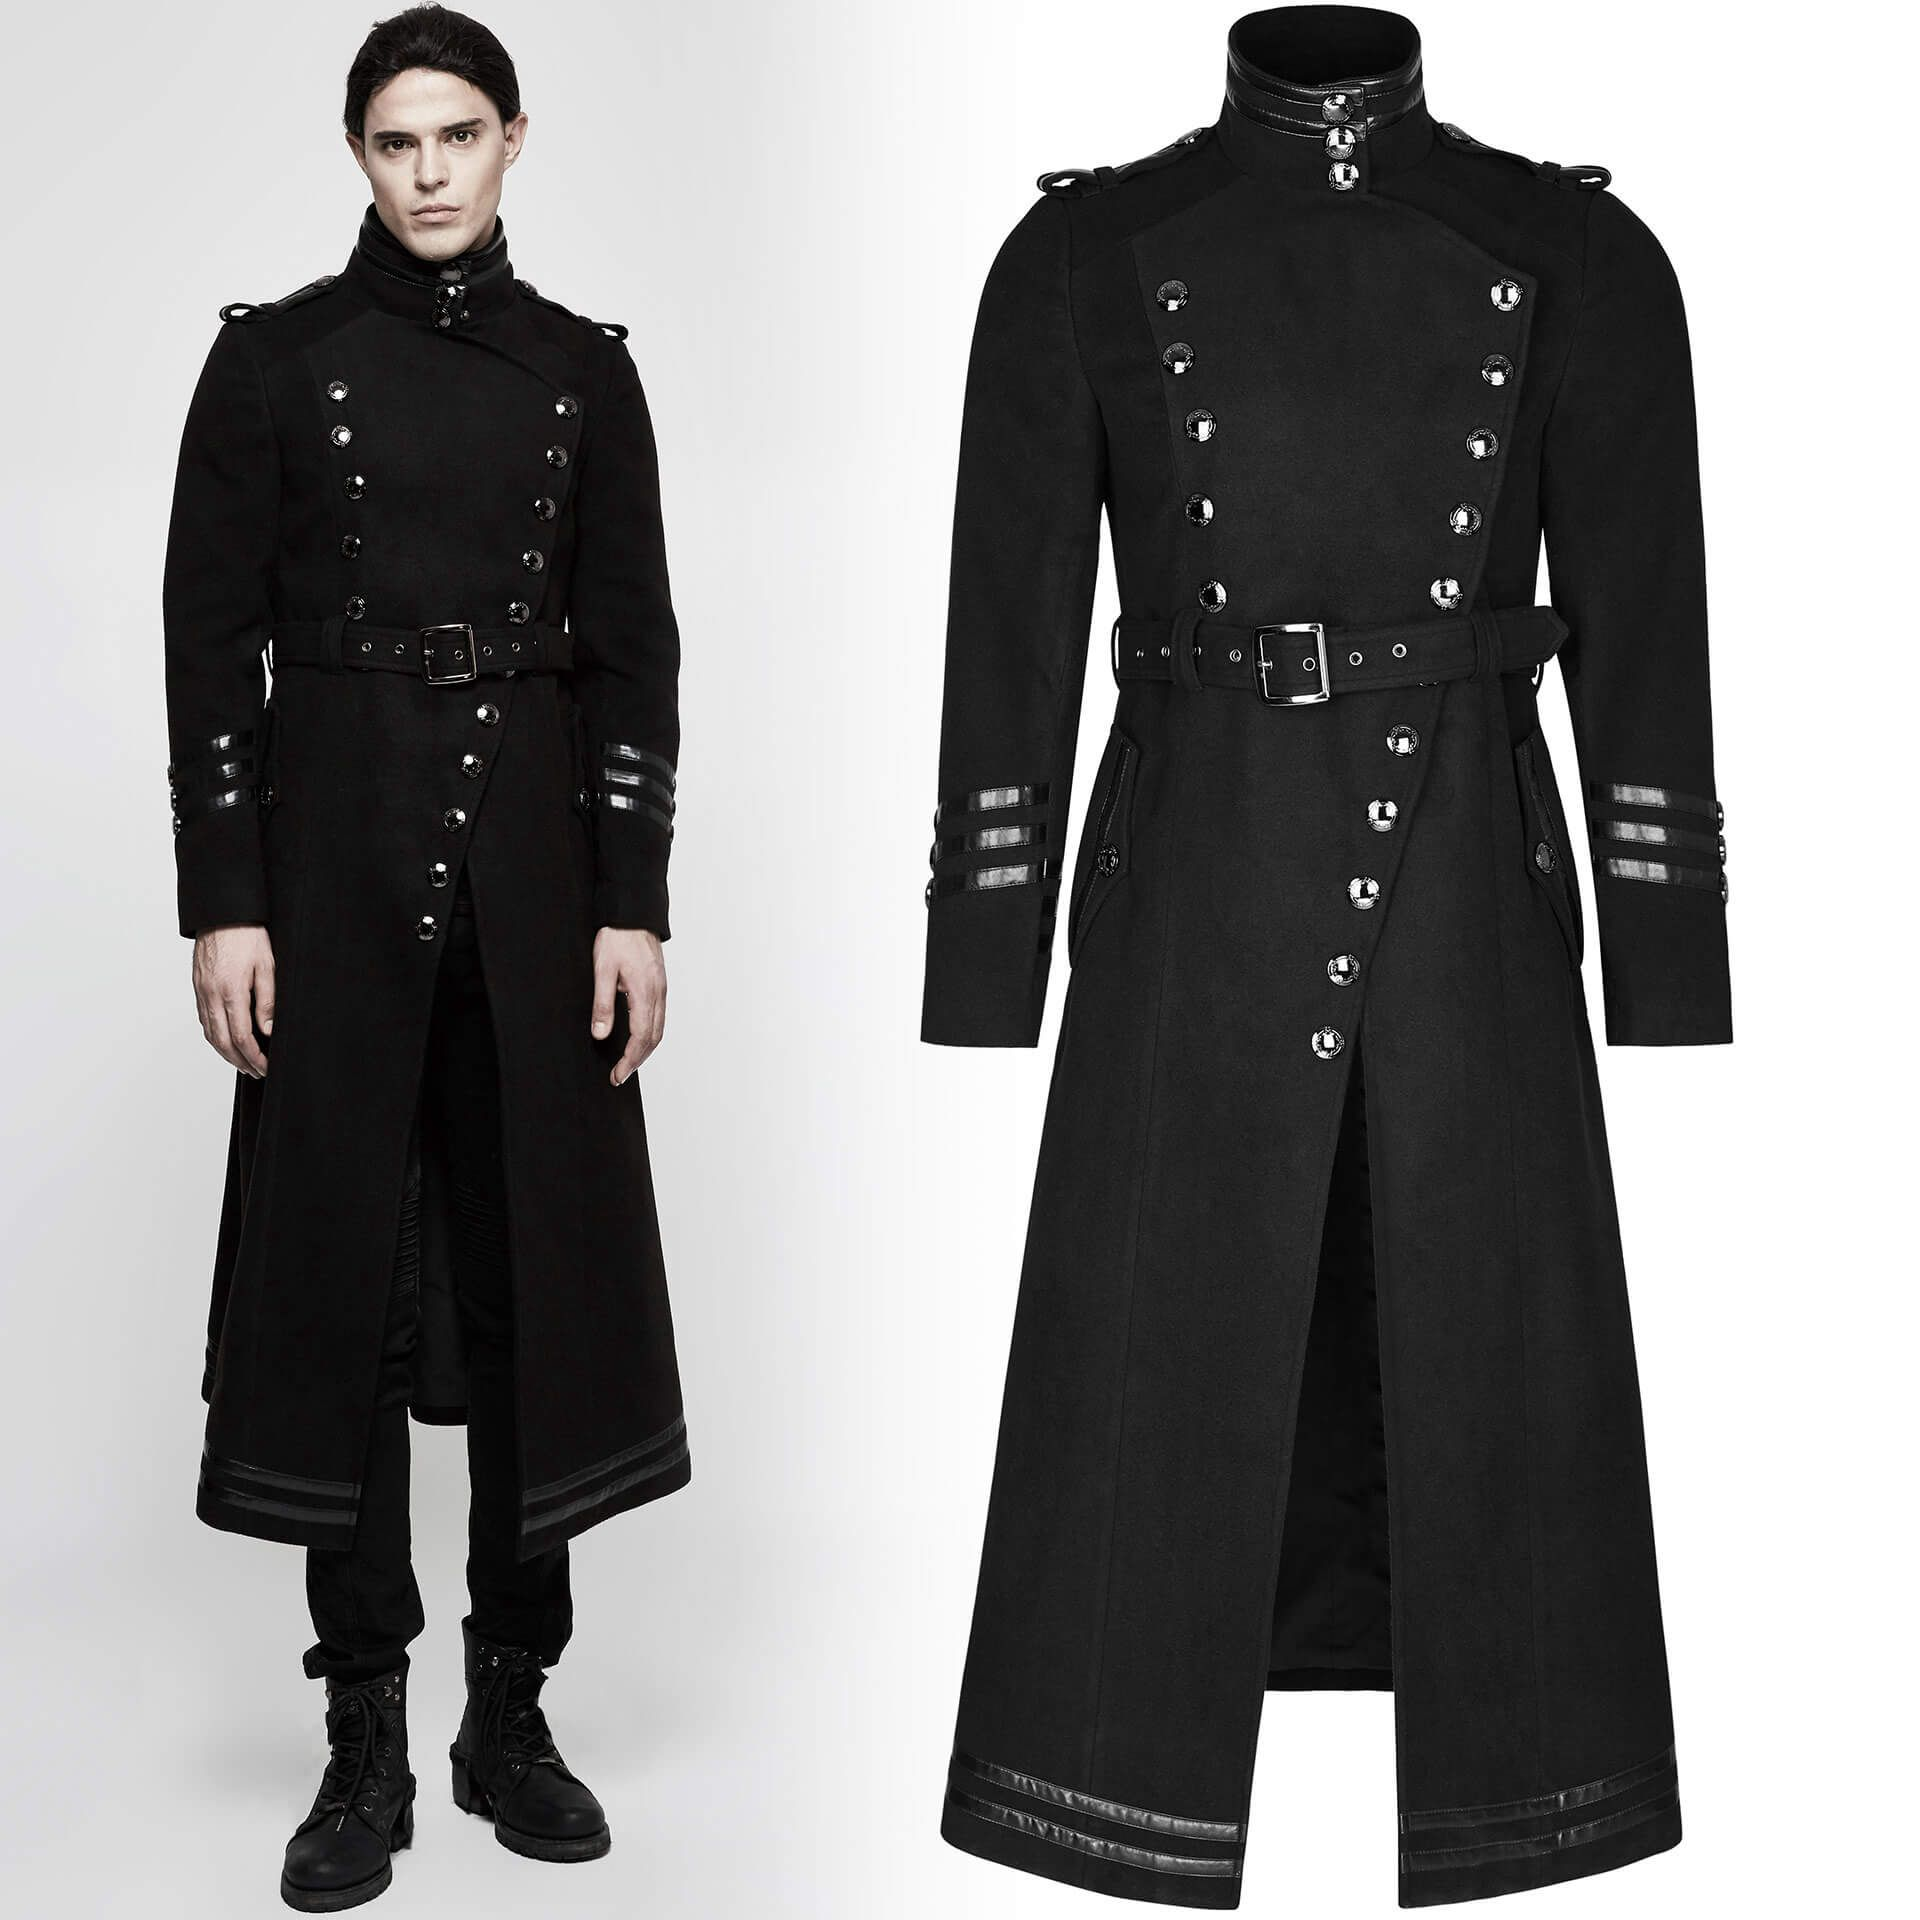 men's Panzer Division Coat by PUNK RAVE brand, code: Y-766/Male